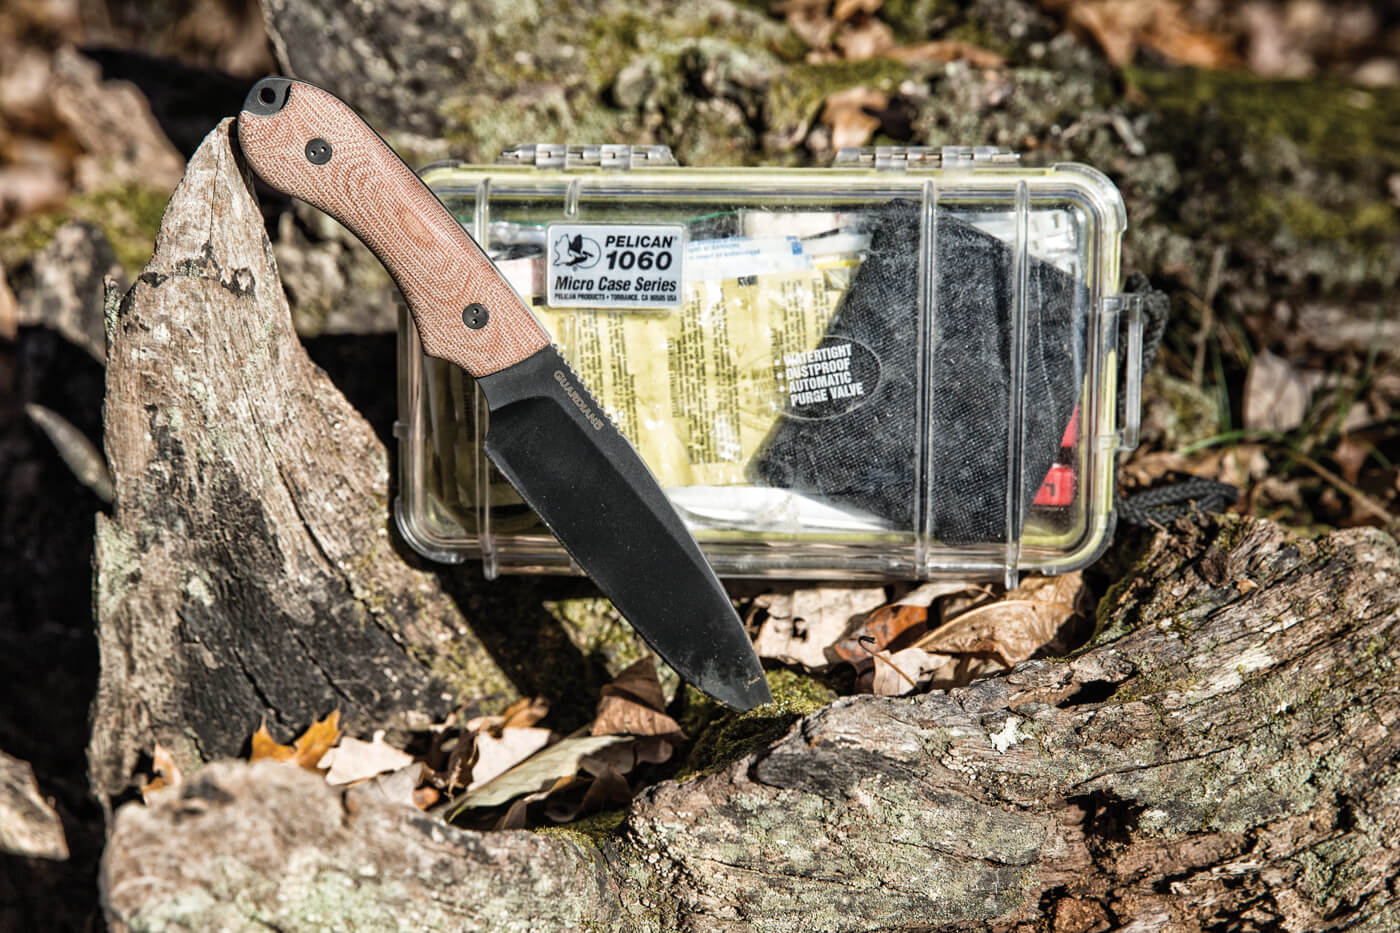 Guardian5 knife shown with a survival kit